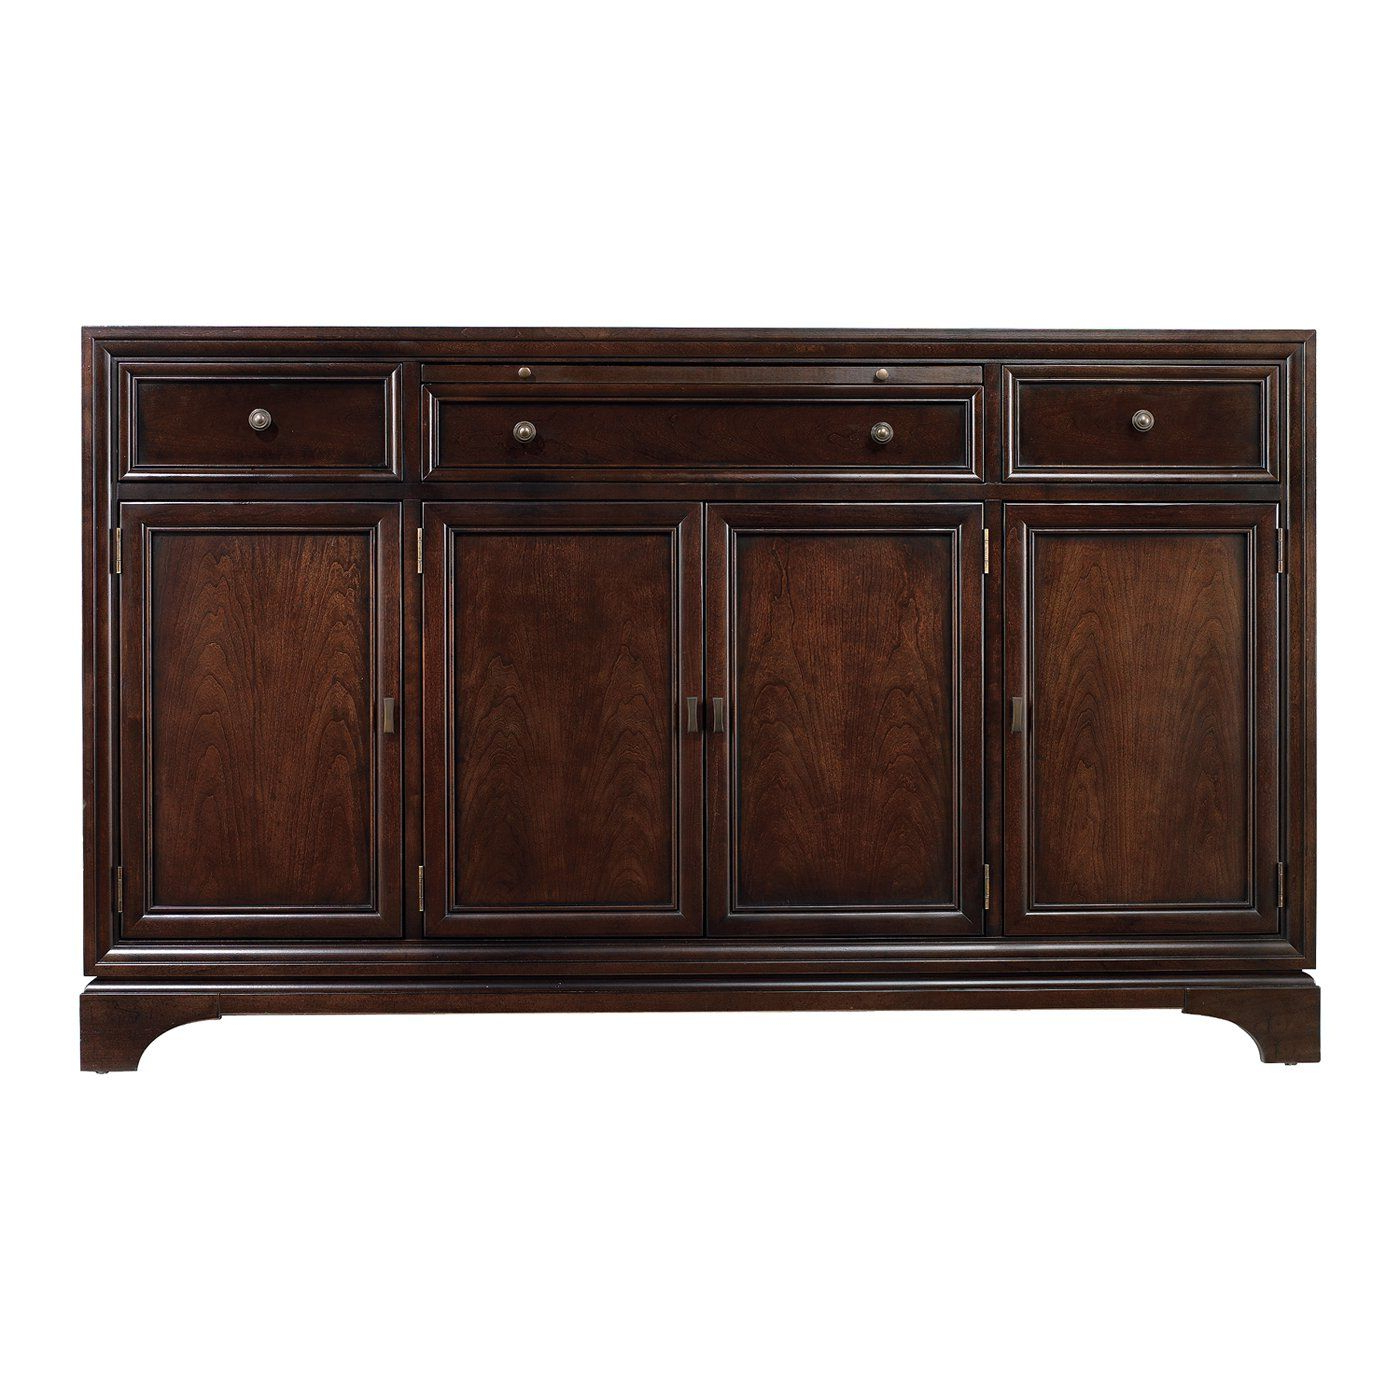 Stanley Furniture 816 61 07 Continuum Buffet Sideboard With Haroun Mocha Sideboards (View 15 of 20)